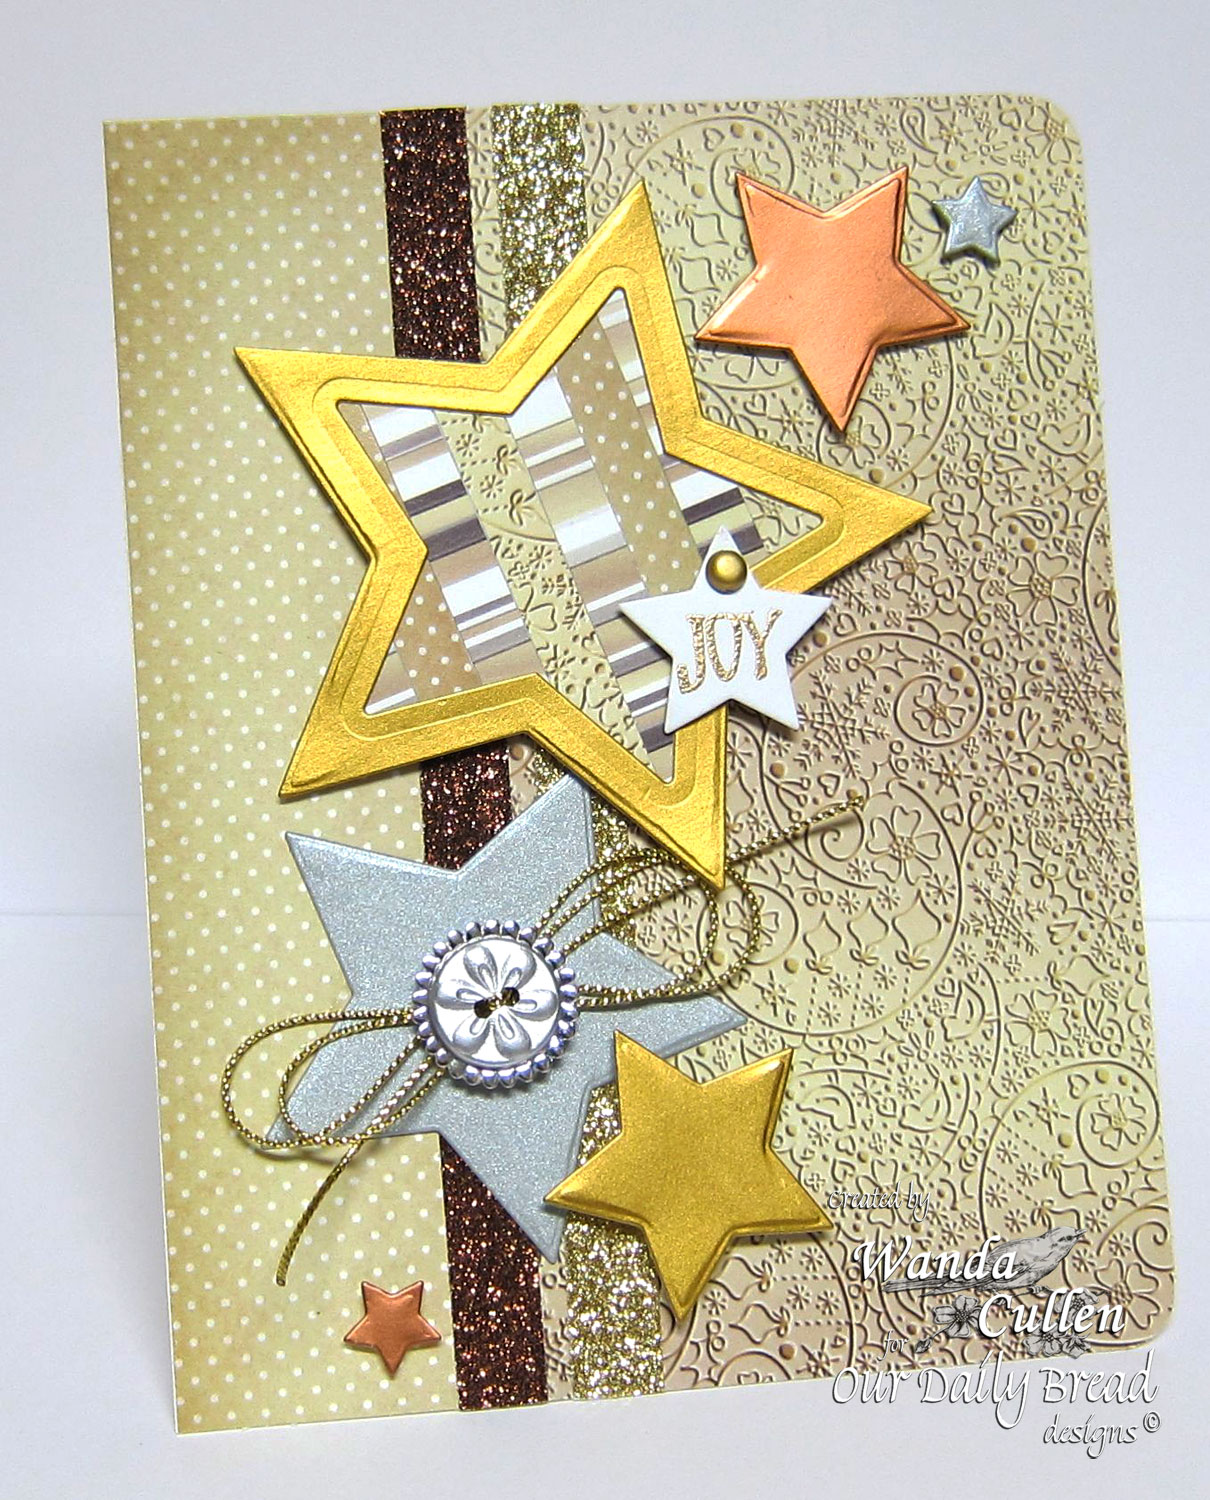 Stamps - Our Daily Bread Designs His Birth, ODBD Winter Paper Collection 2014, ODBD Custom Sparkling Stars Dies